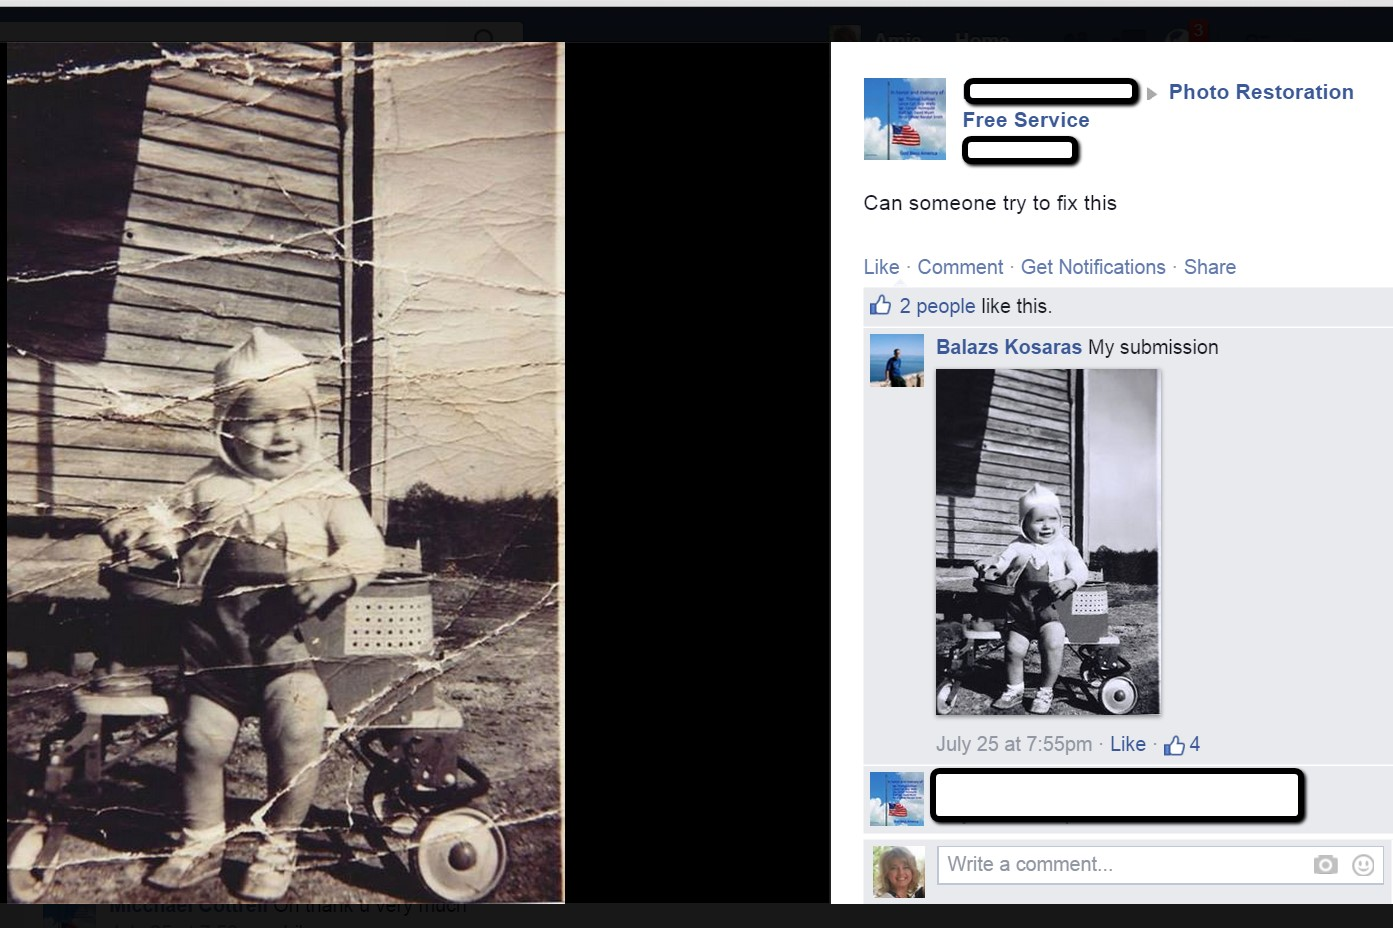 restoring old photos easily